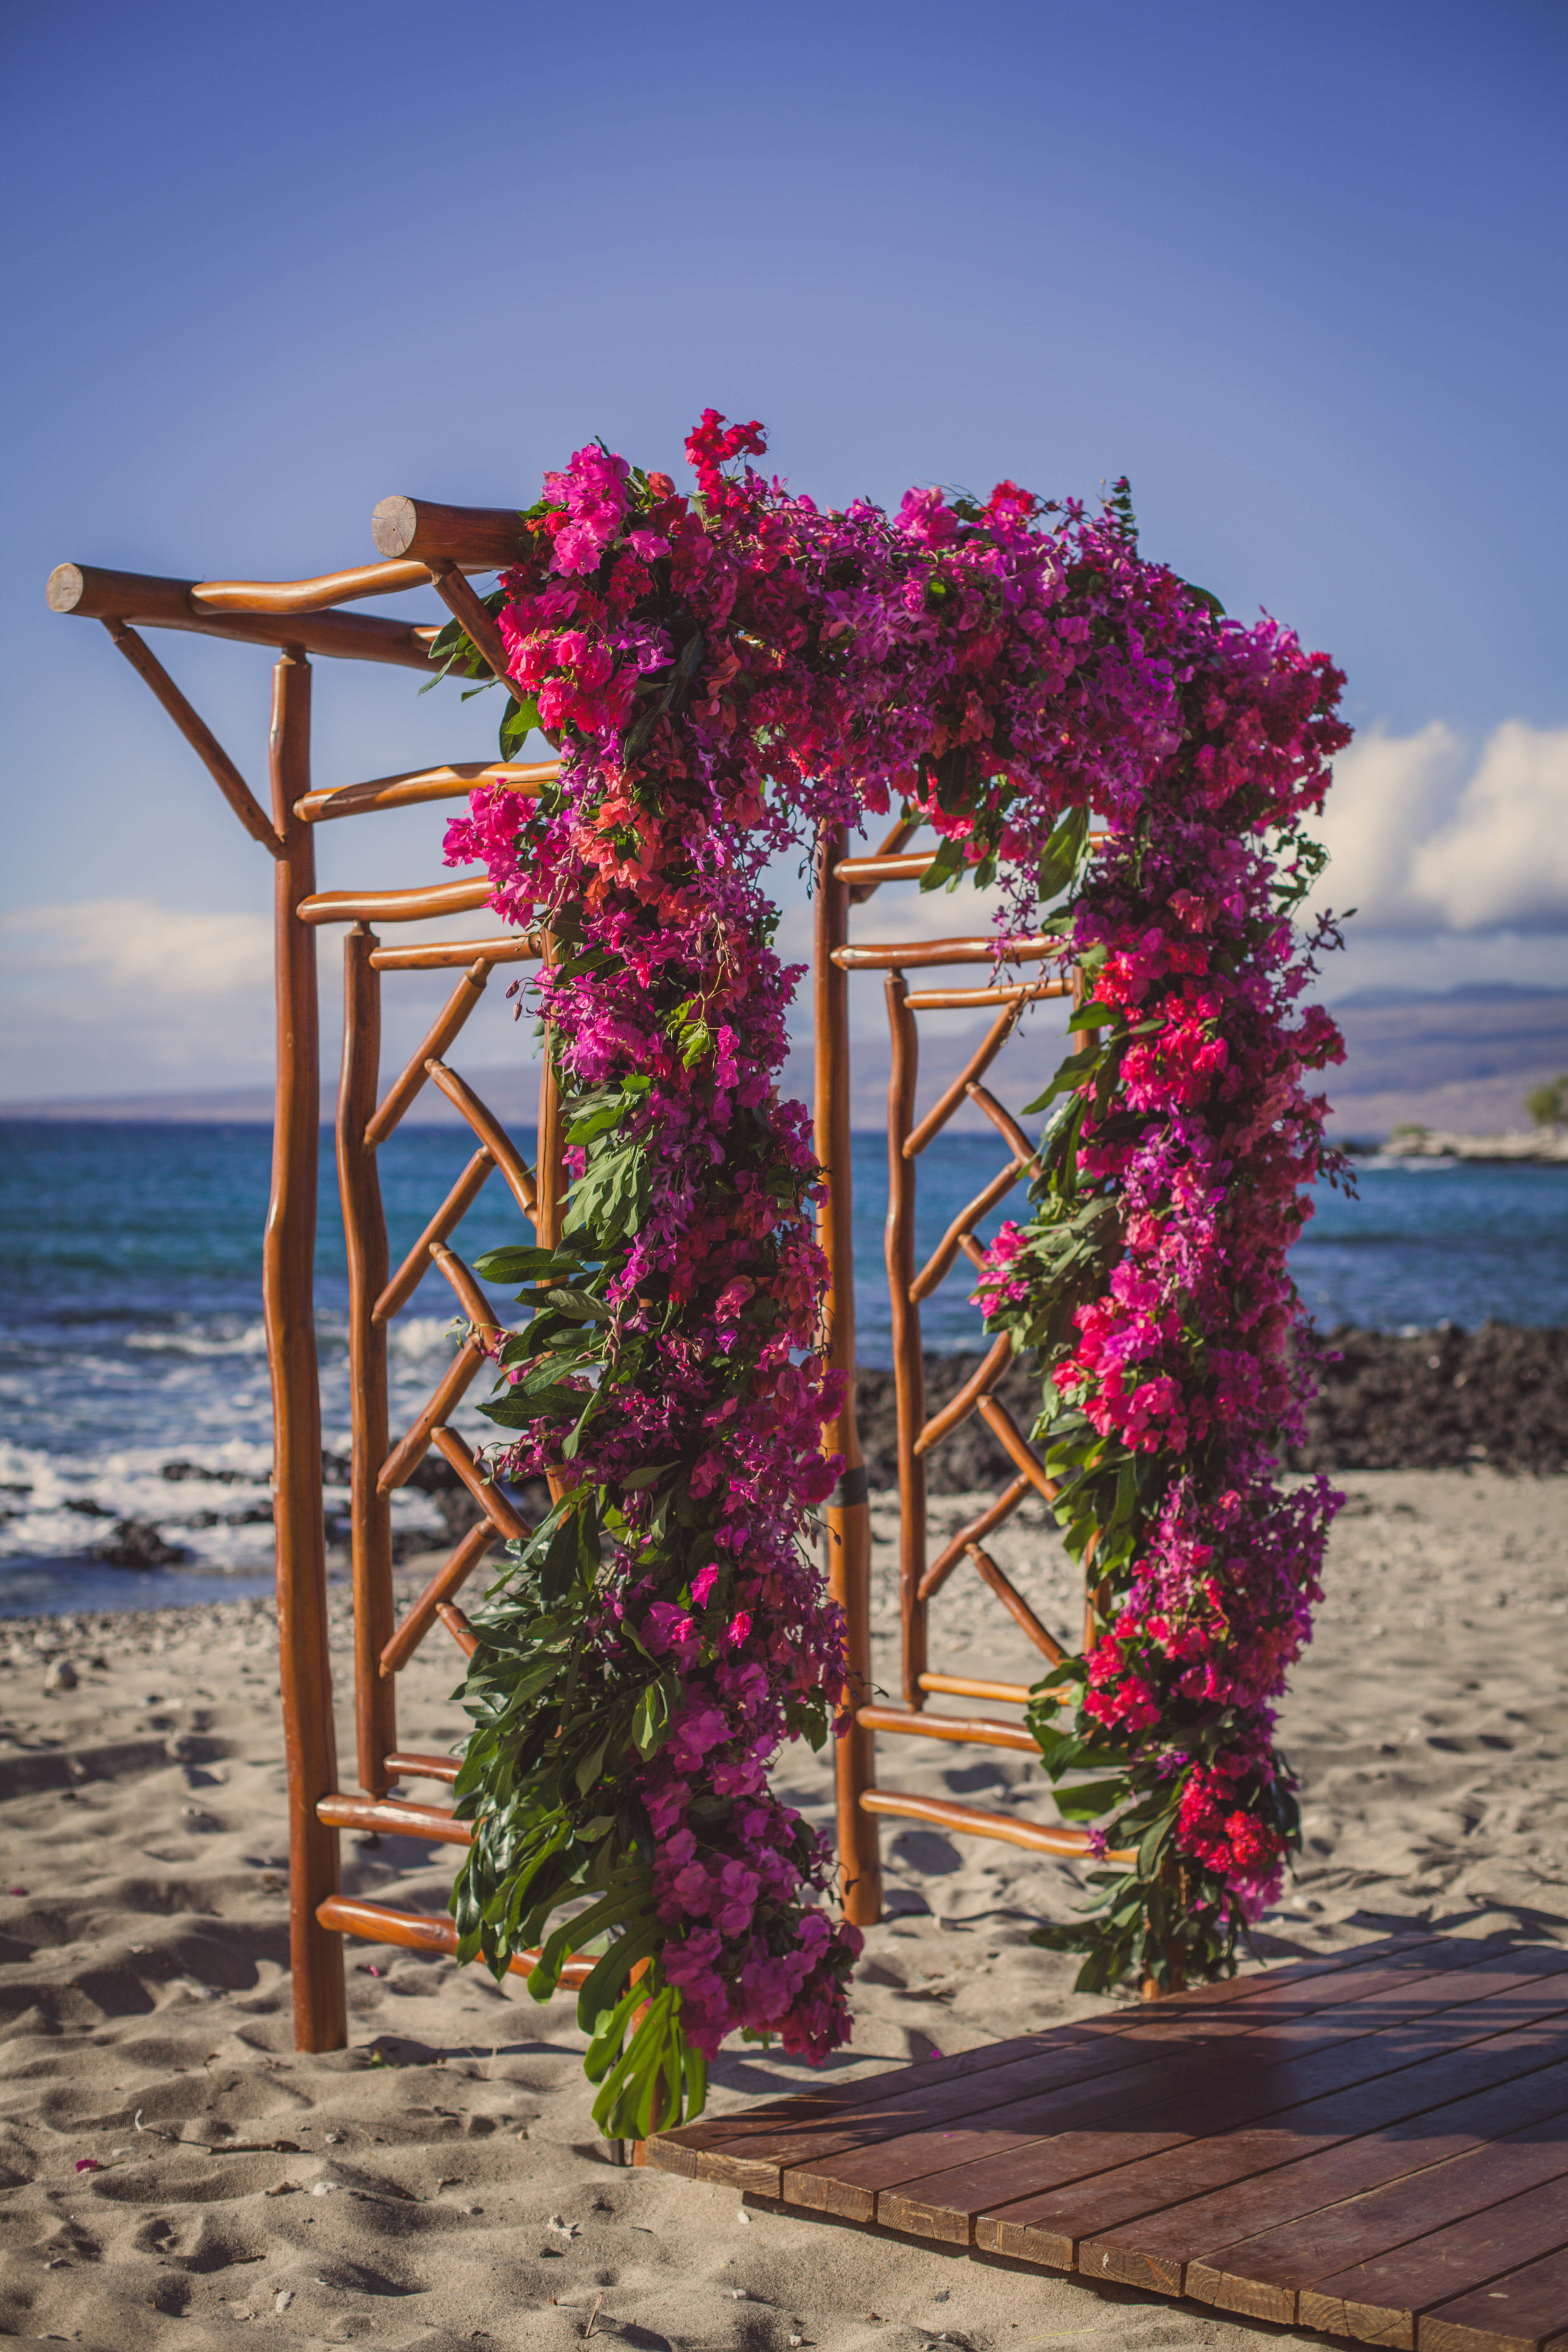 big island hawaii fairmont orchid beach wedding © kelilina photography 20170812171447-1.jpg